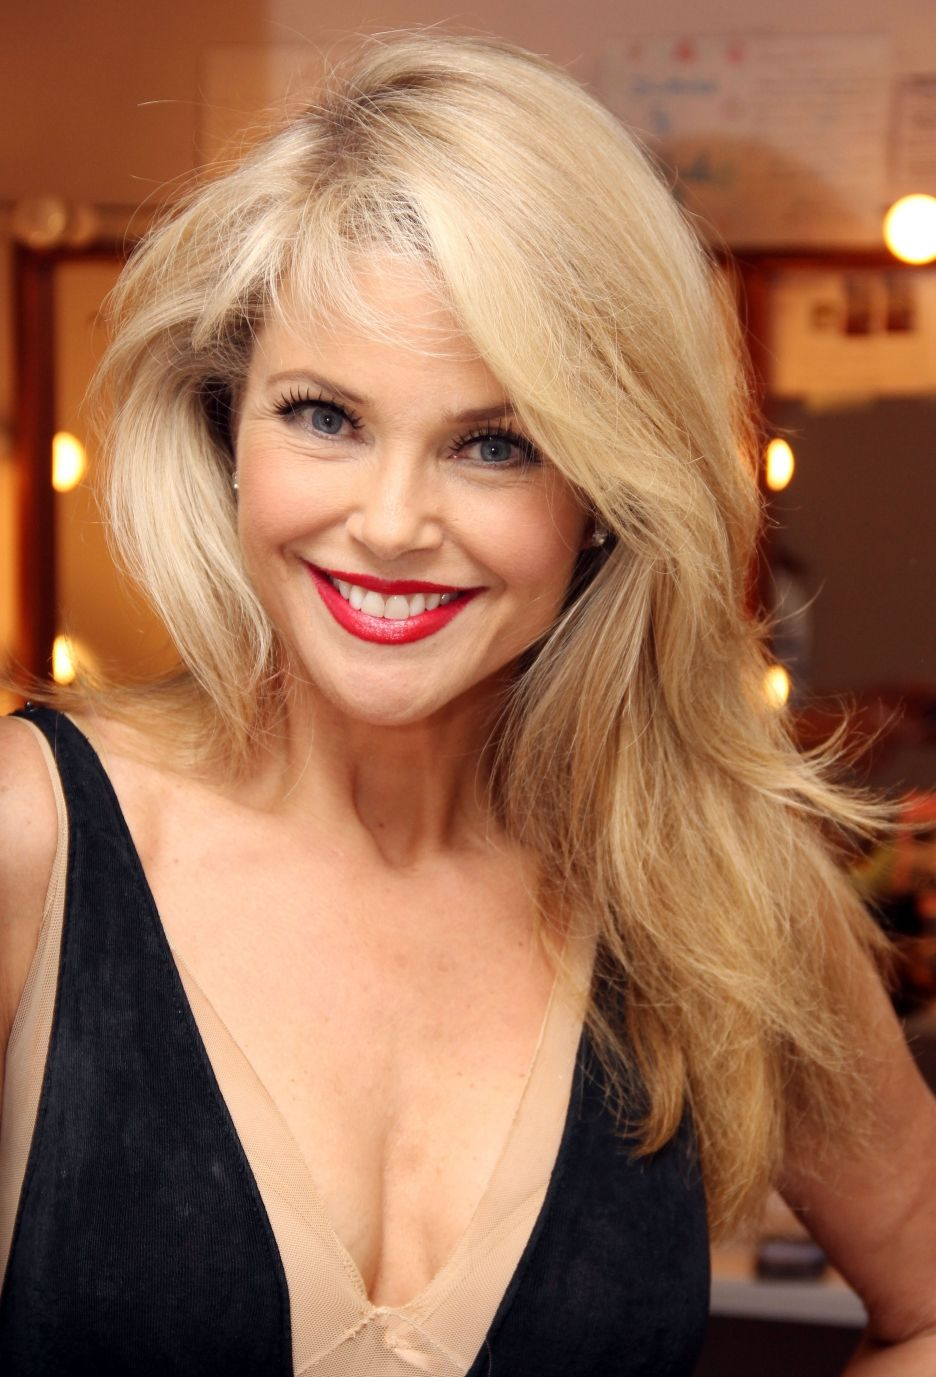 Christie Brinkley 12 years old people! Looks young and amazing